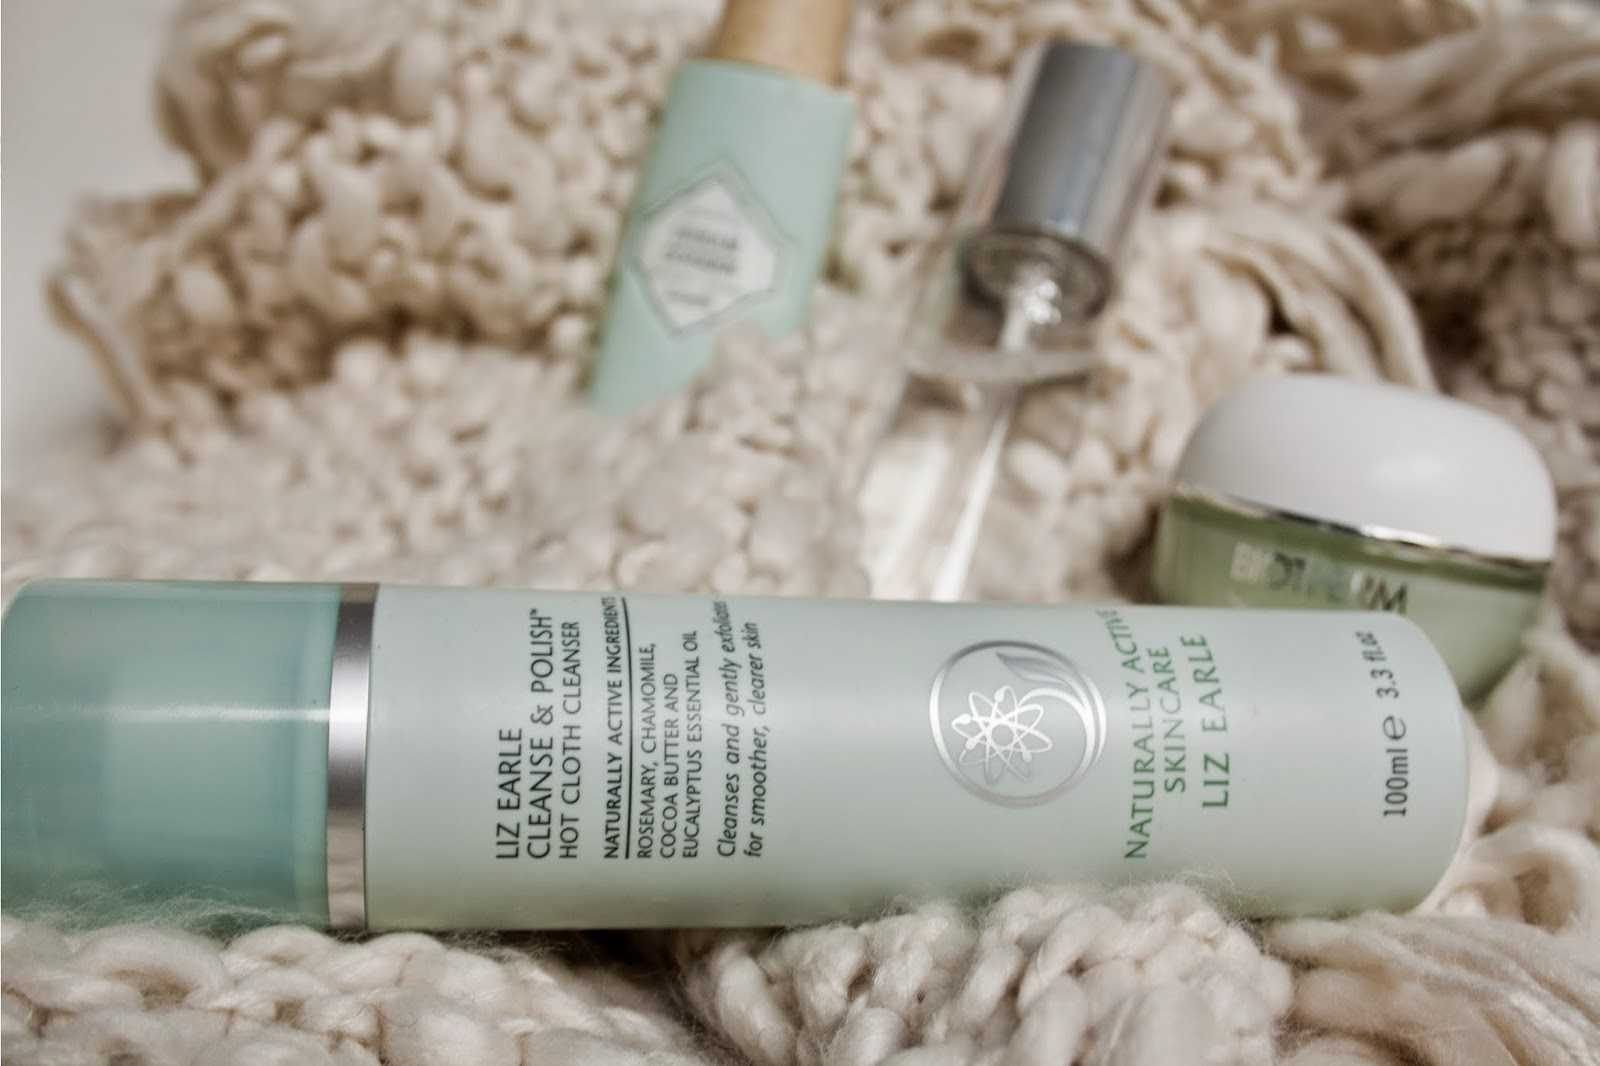 Liz Earle. Hot cloth cleanser.